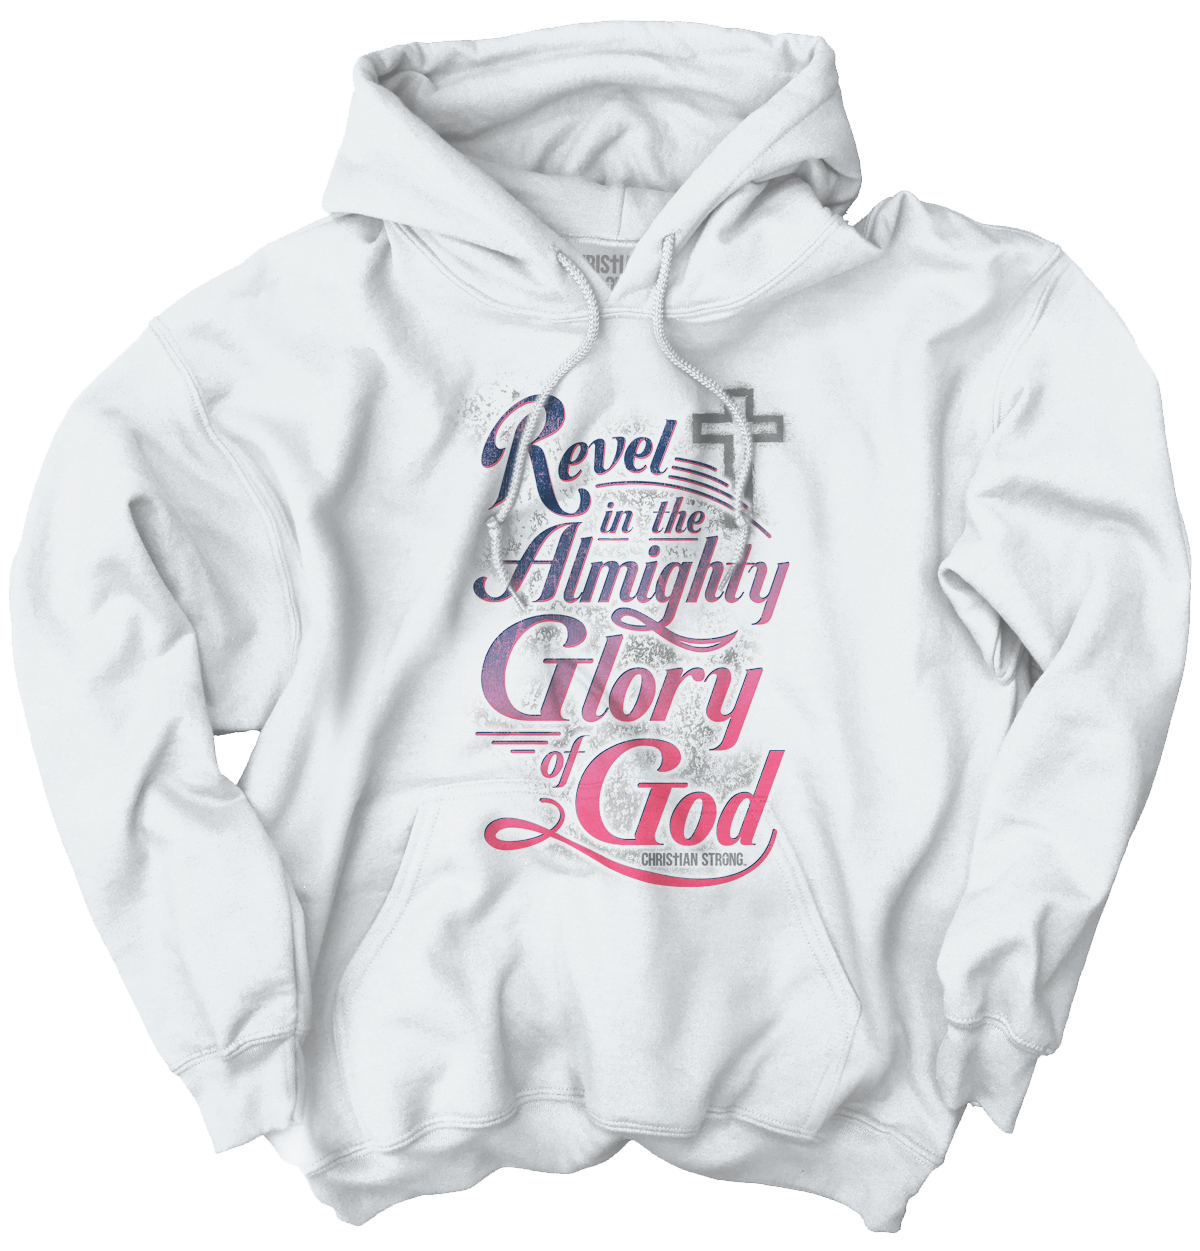 Revel Almighty Glory God Christian Shirt | Jesus Christ Gift Hoodie Sweatshirt